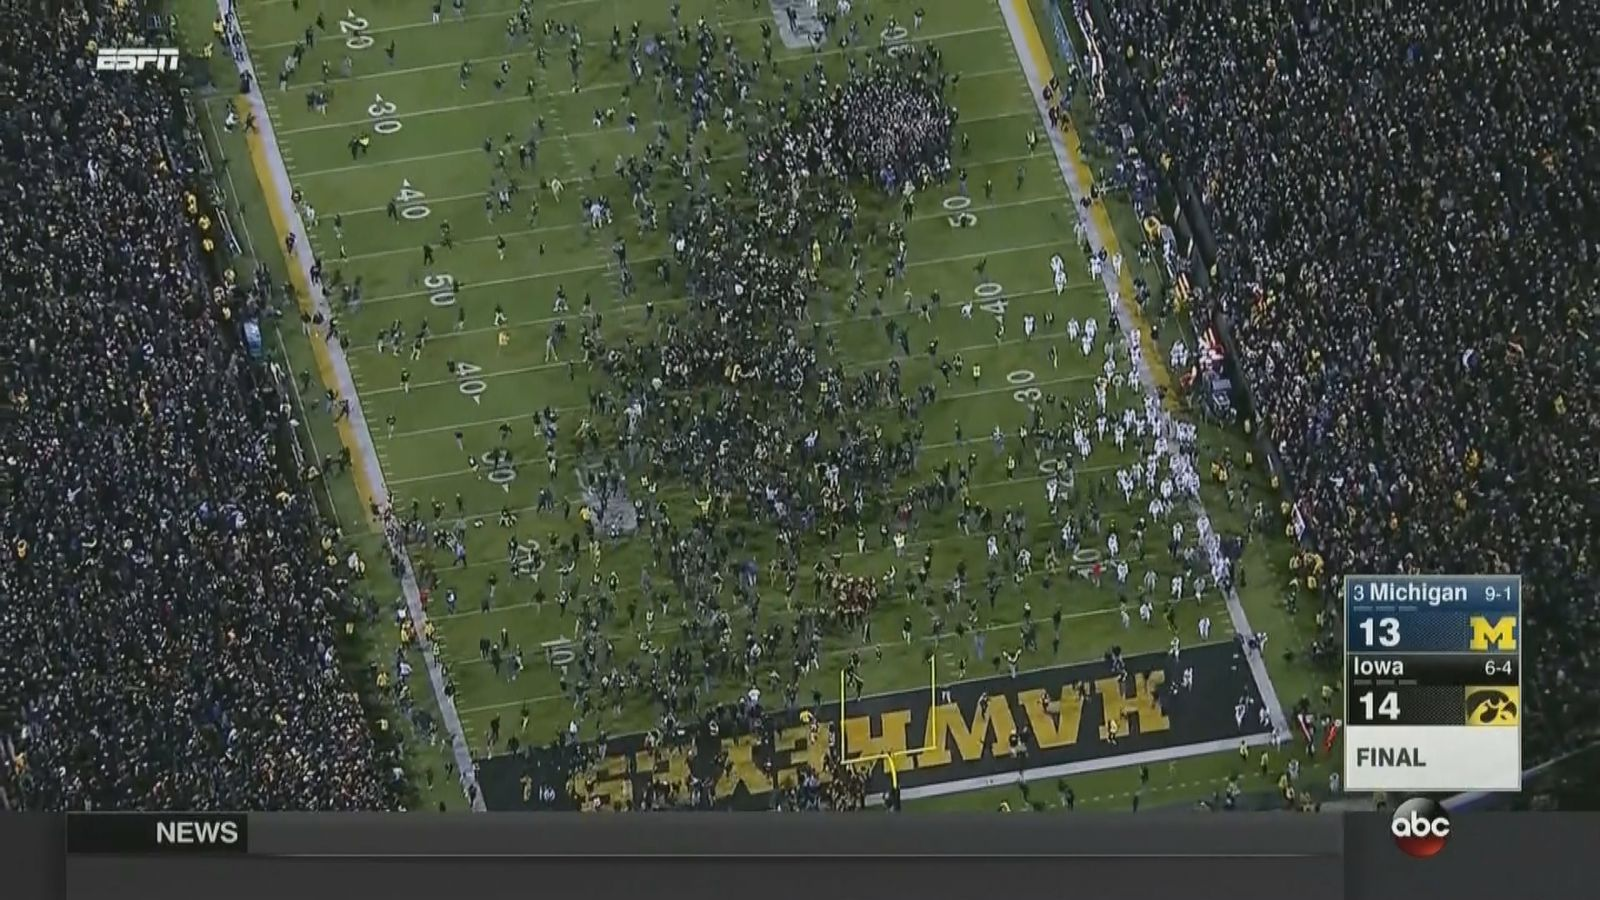 No. 3 Michigan falls to Iowa to complete Upset Saturday ...